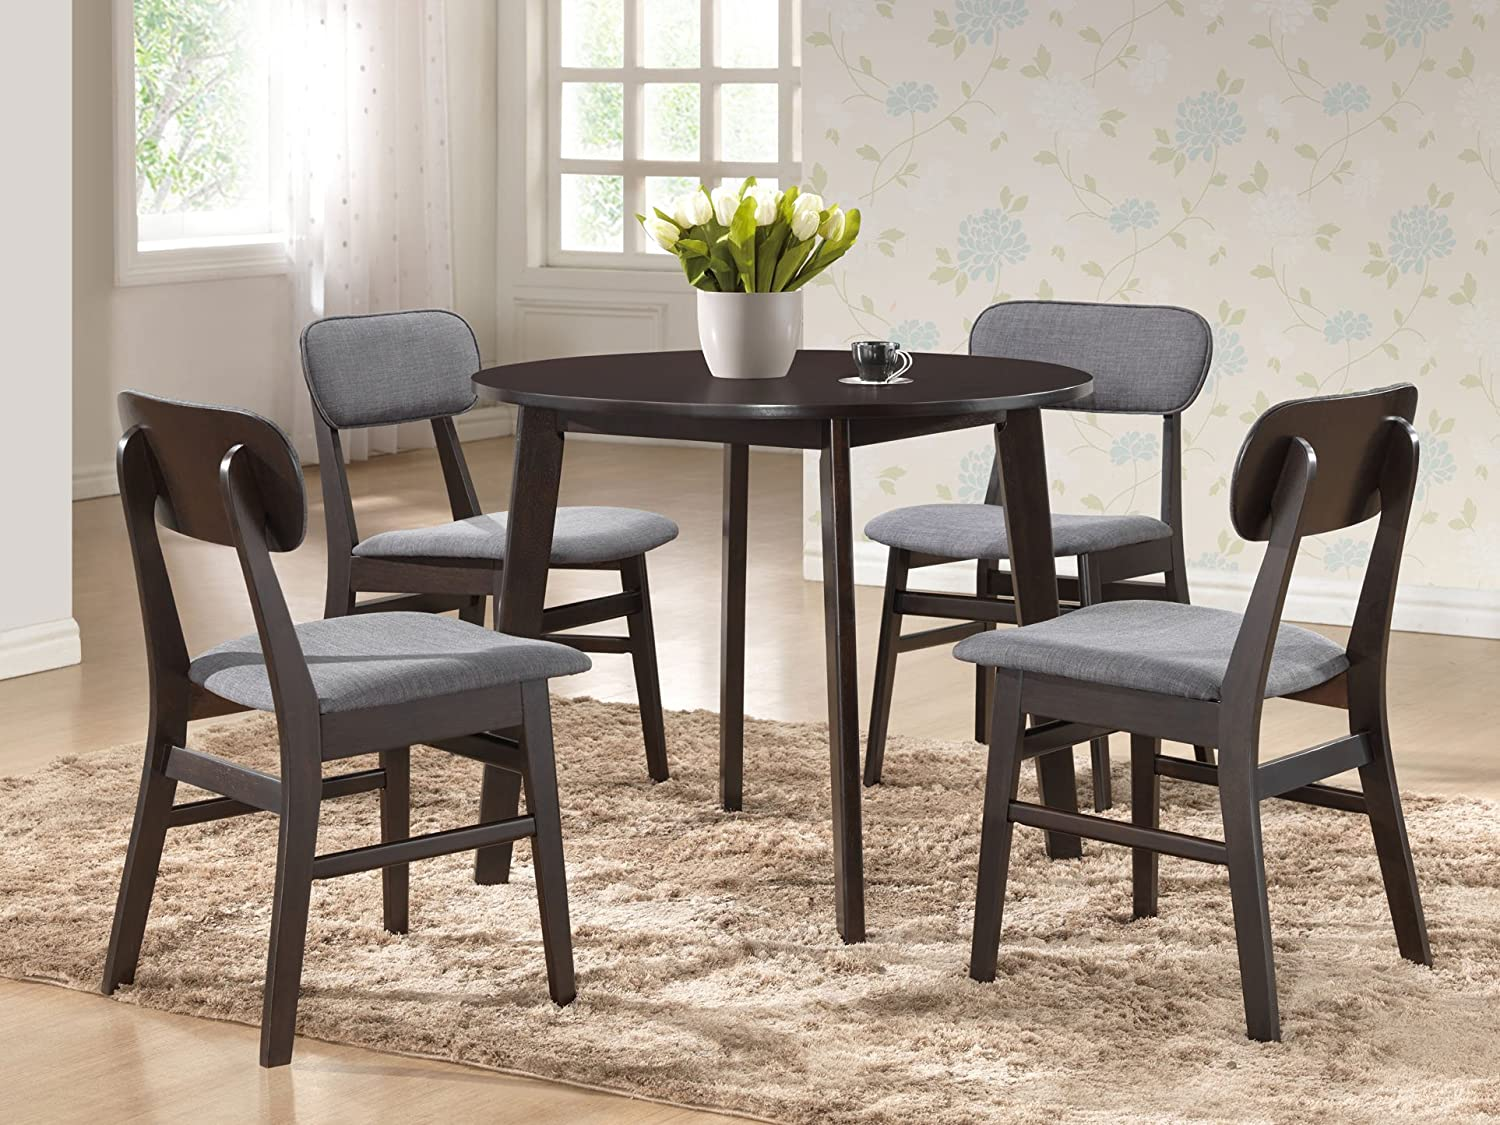 Amazon.com - Baxton Studio Debbie Mid-Century Round Dining Table ...